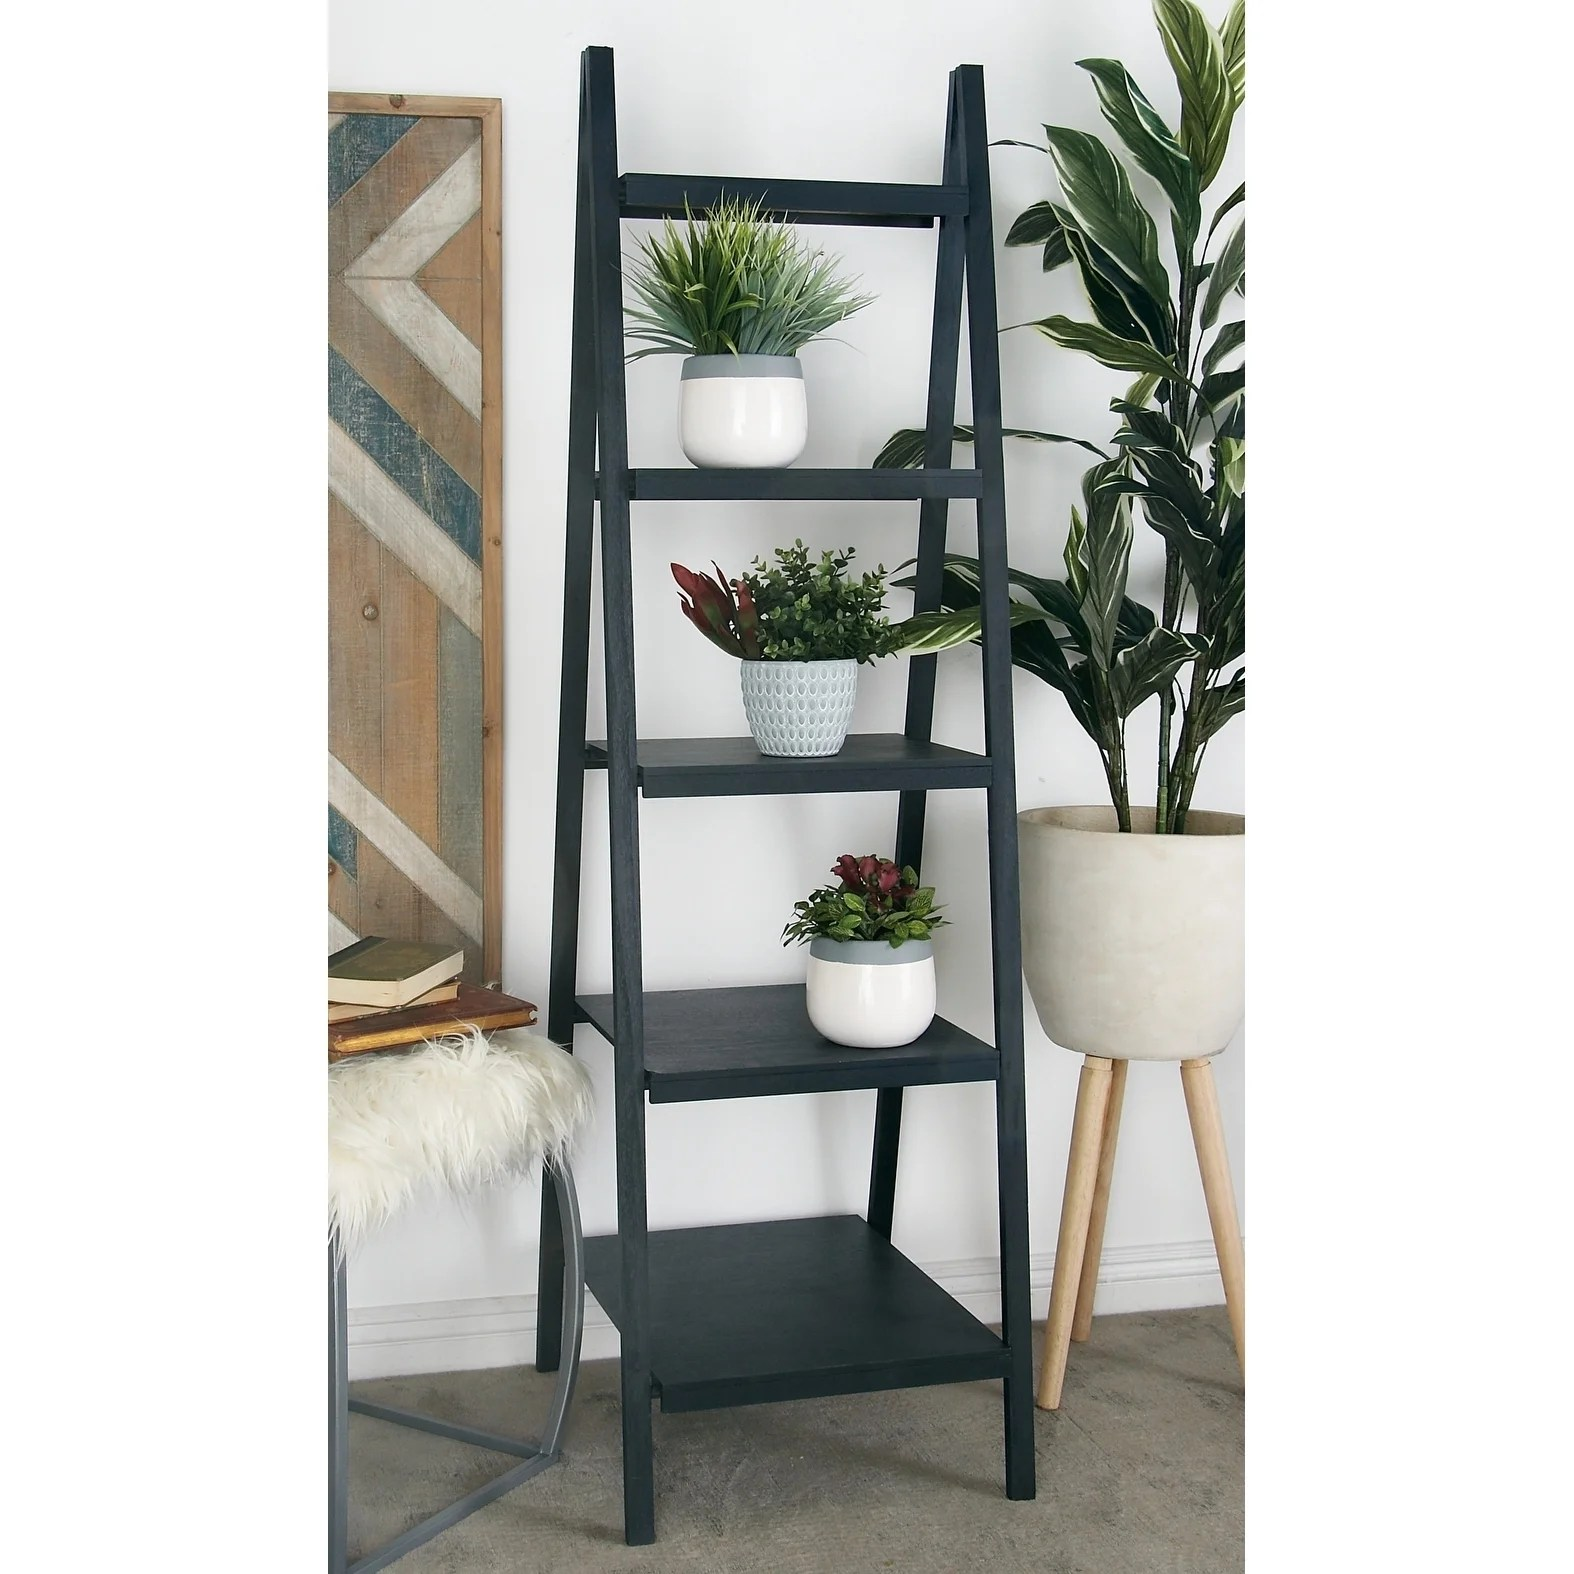 Etagere Otto Contemporary 65 X 22 Inch Dark Gray Wooden Book Shelf By Studio 350